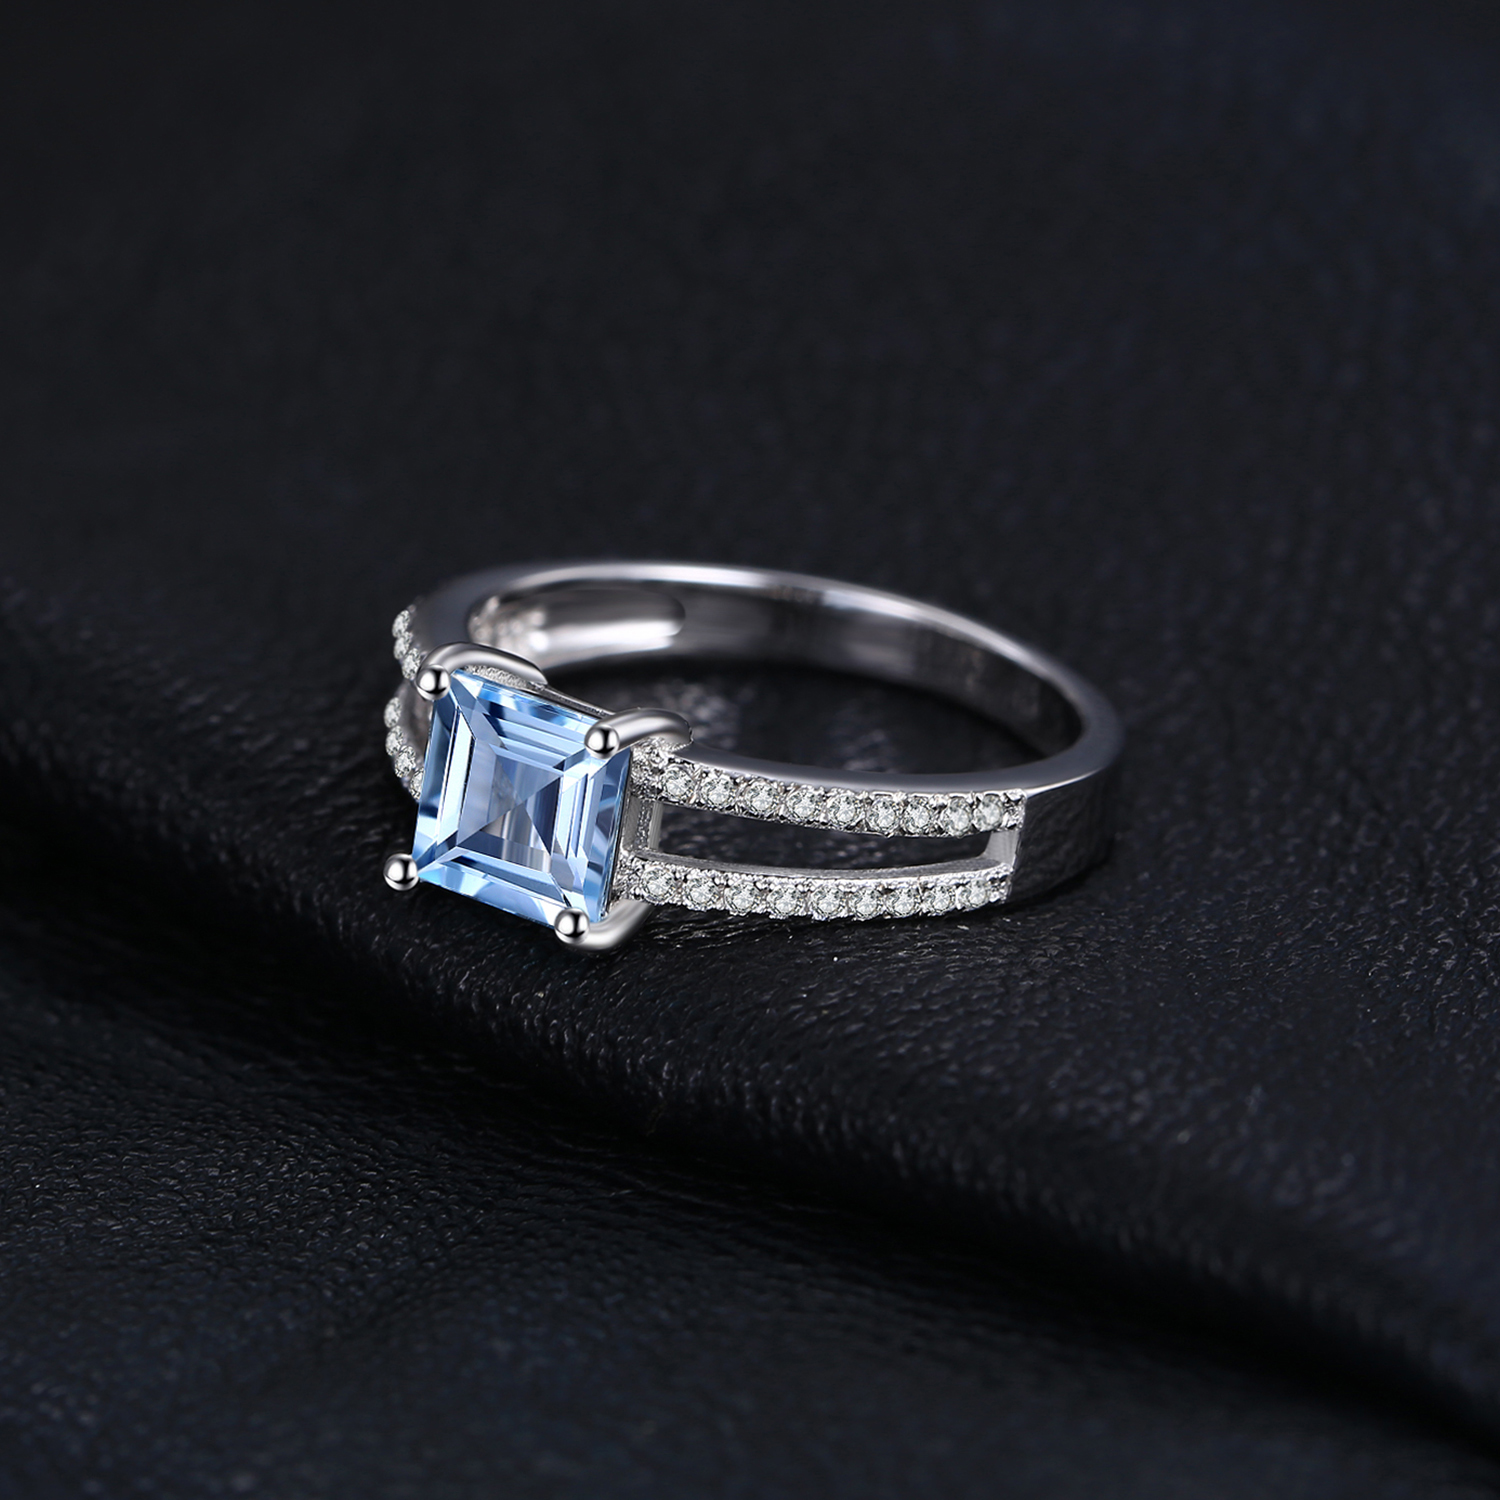 Image 2 - JewelryPalace Princess Genuine Blue Topaz Ring 925 Sterling  Silver Rings for Women Engagement Ring Silver 925 Gemstones Jewelryring  fashionring forrings for women